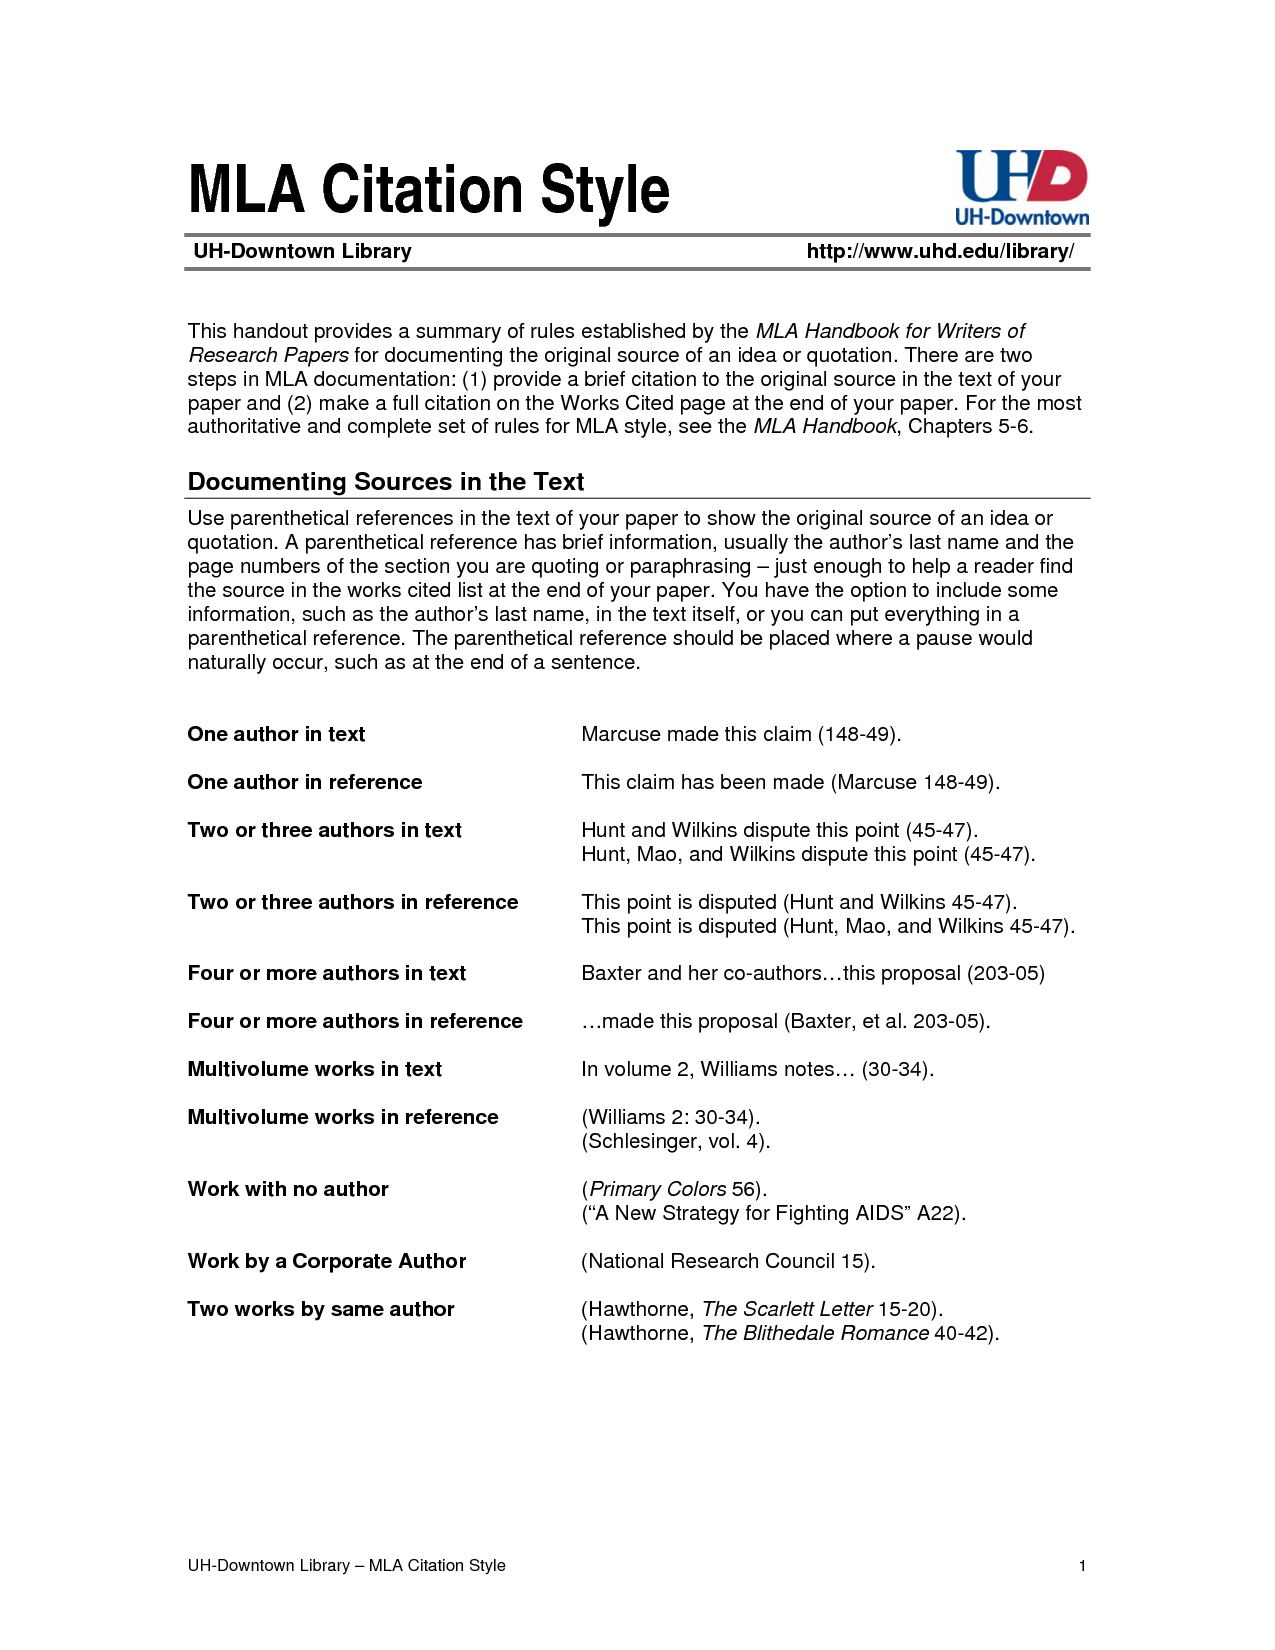 mla citation formate